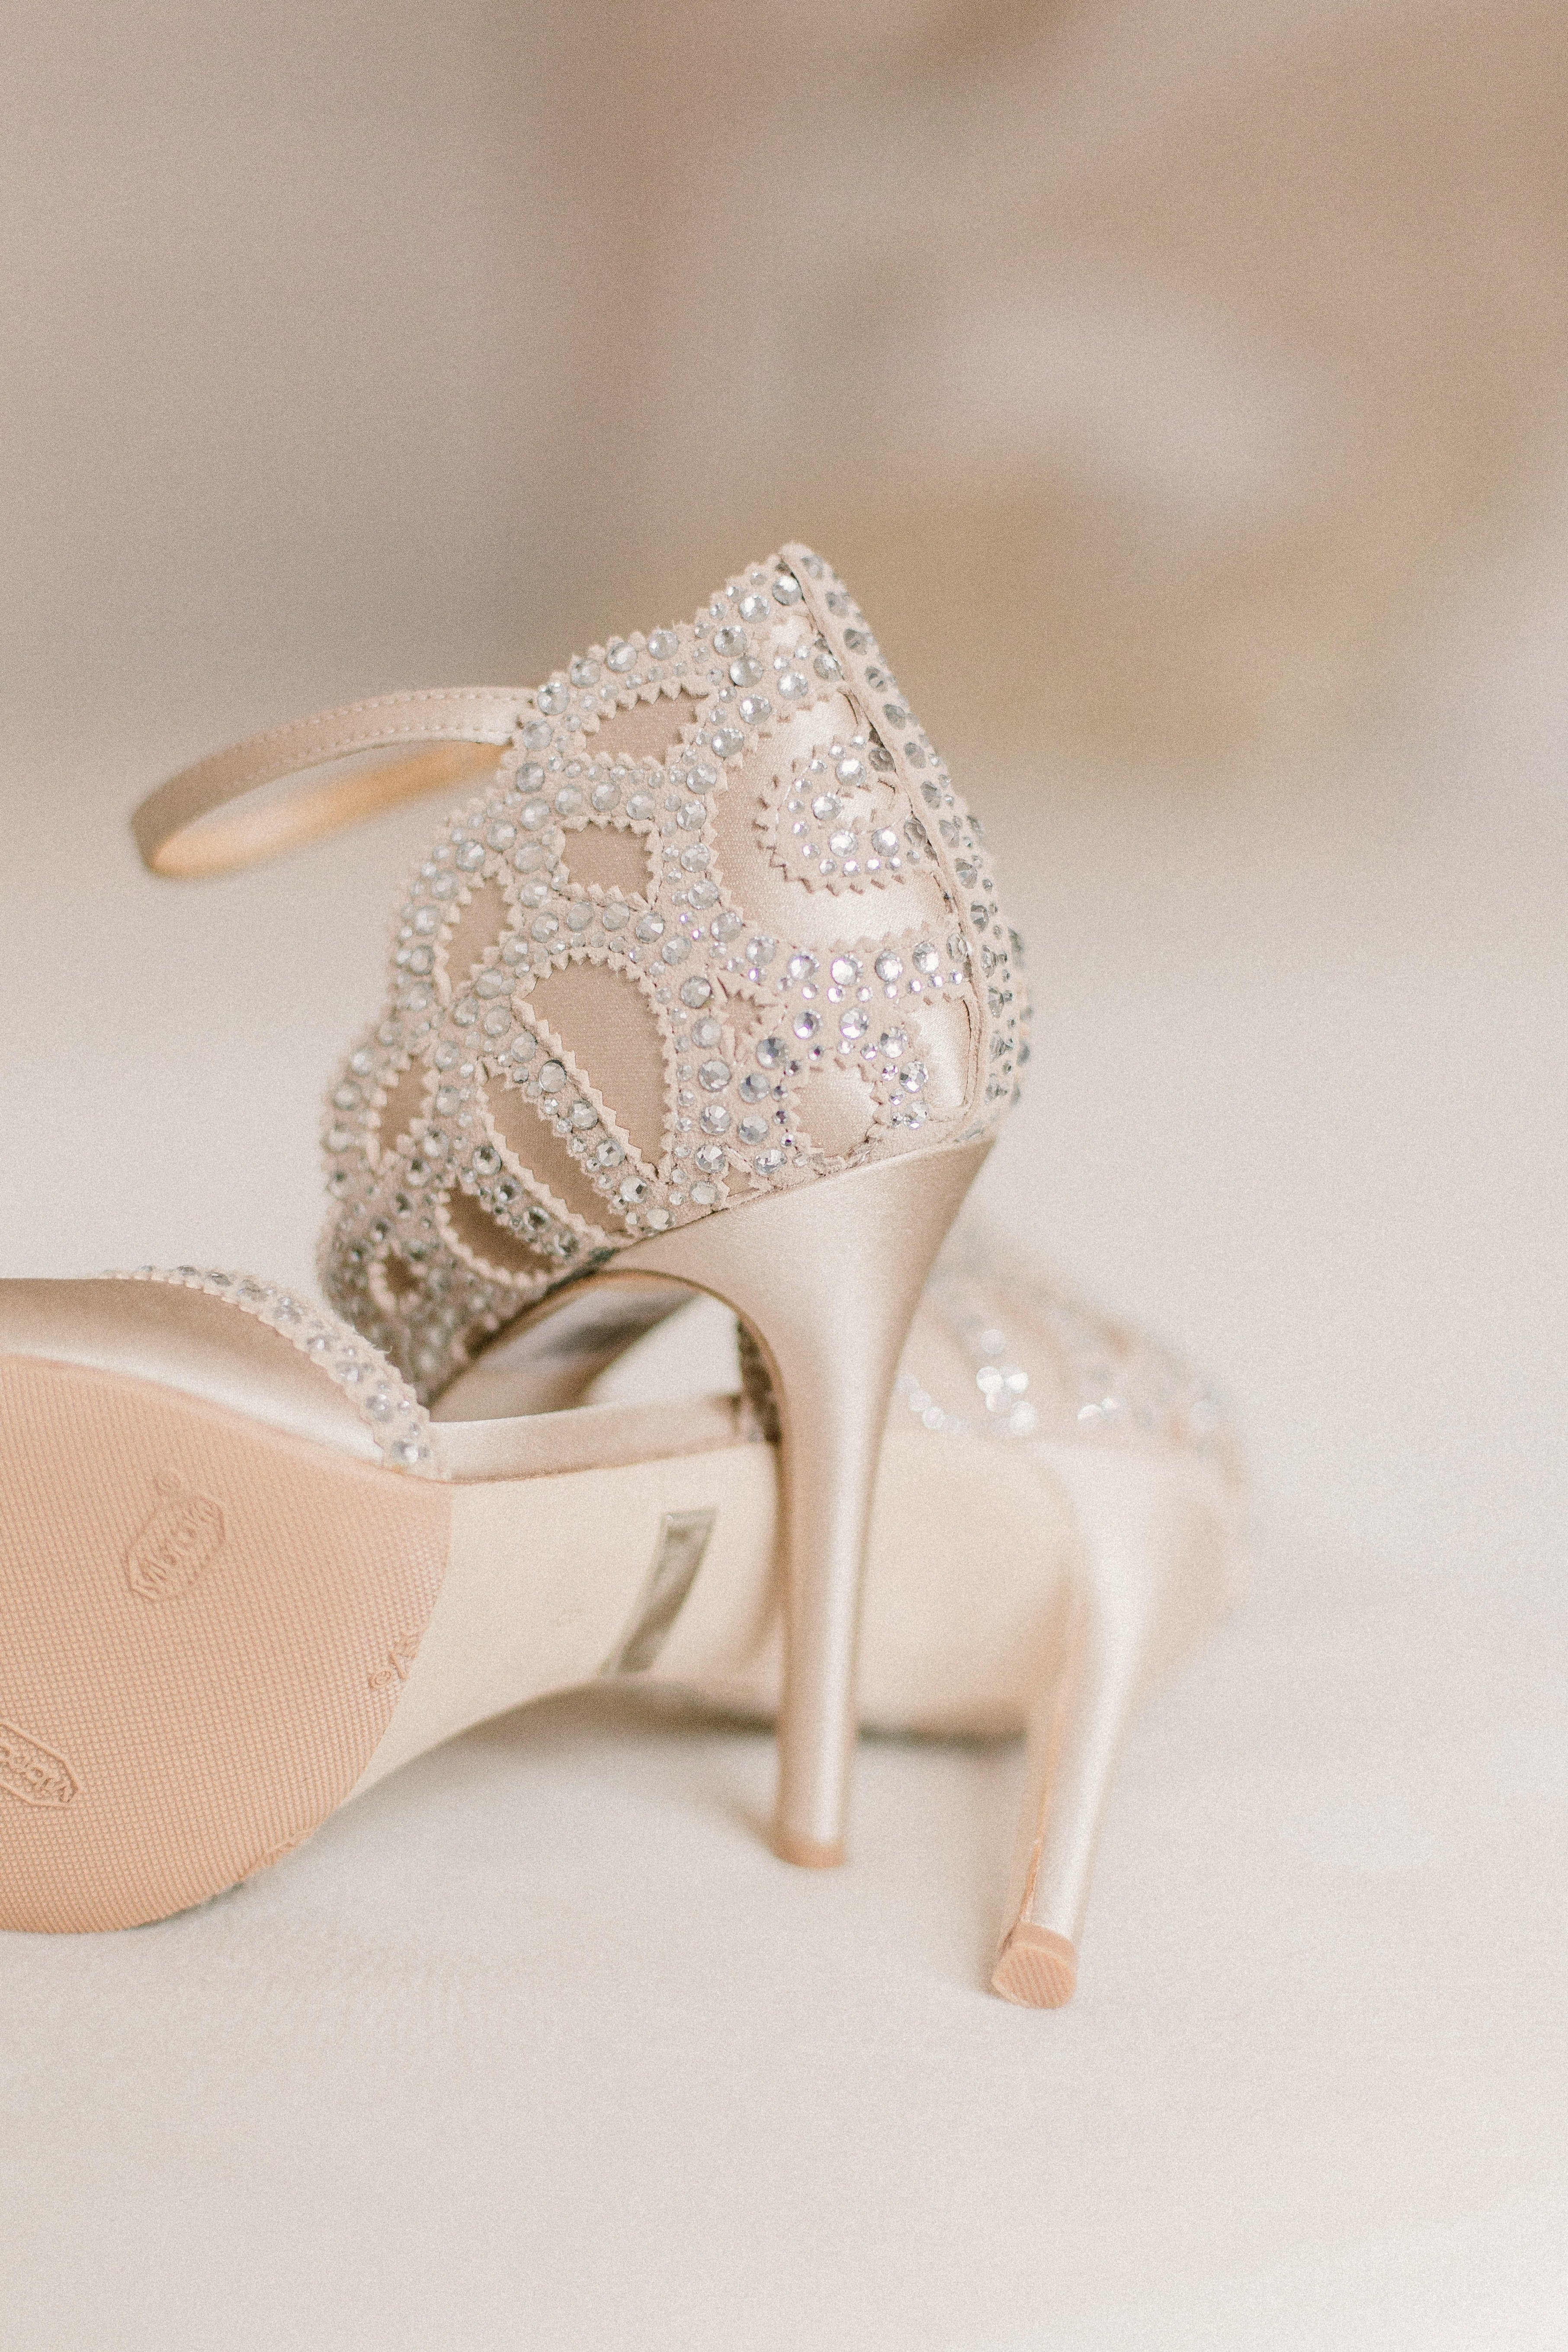 Would the husband give away her shoes? | Photo: Pexels/Kseniia Lopyreva